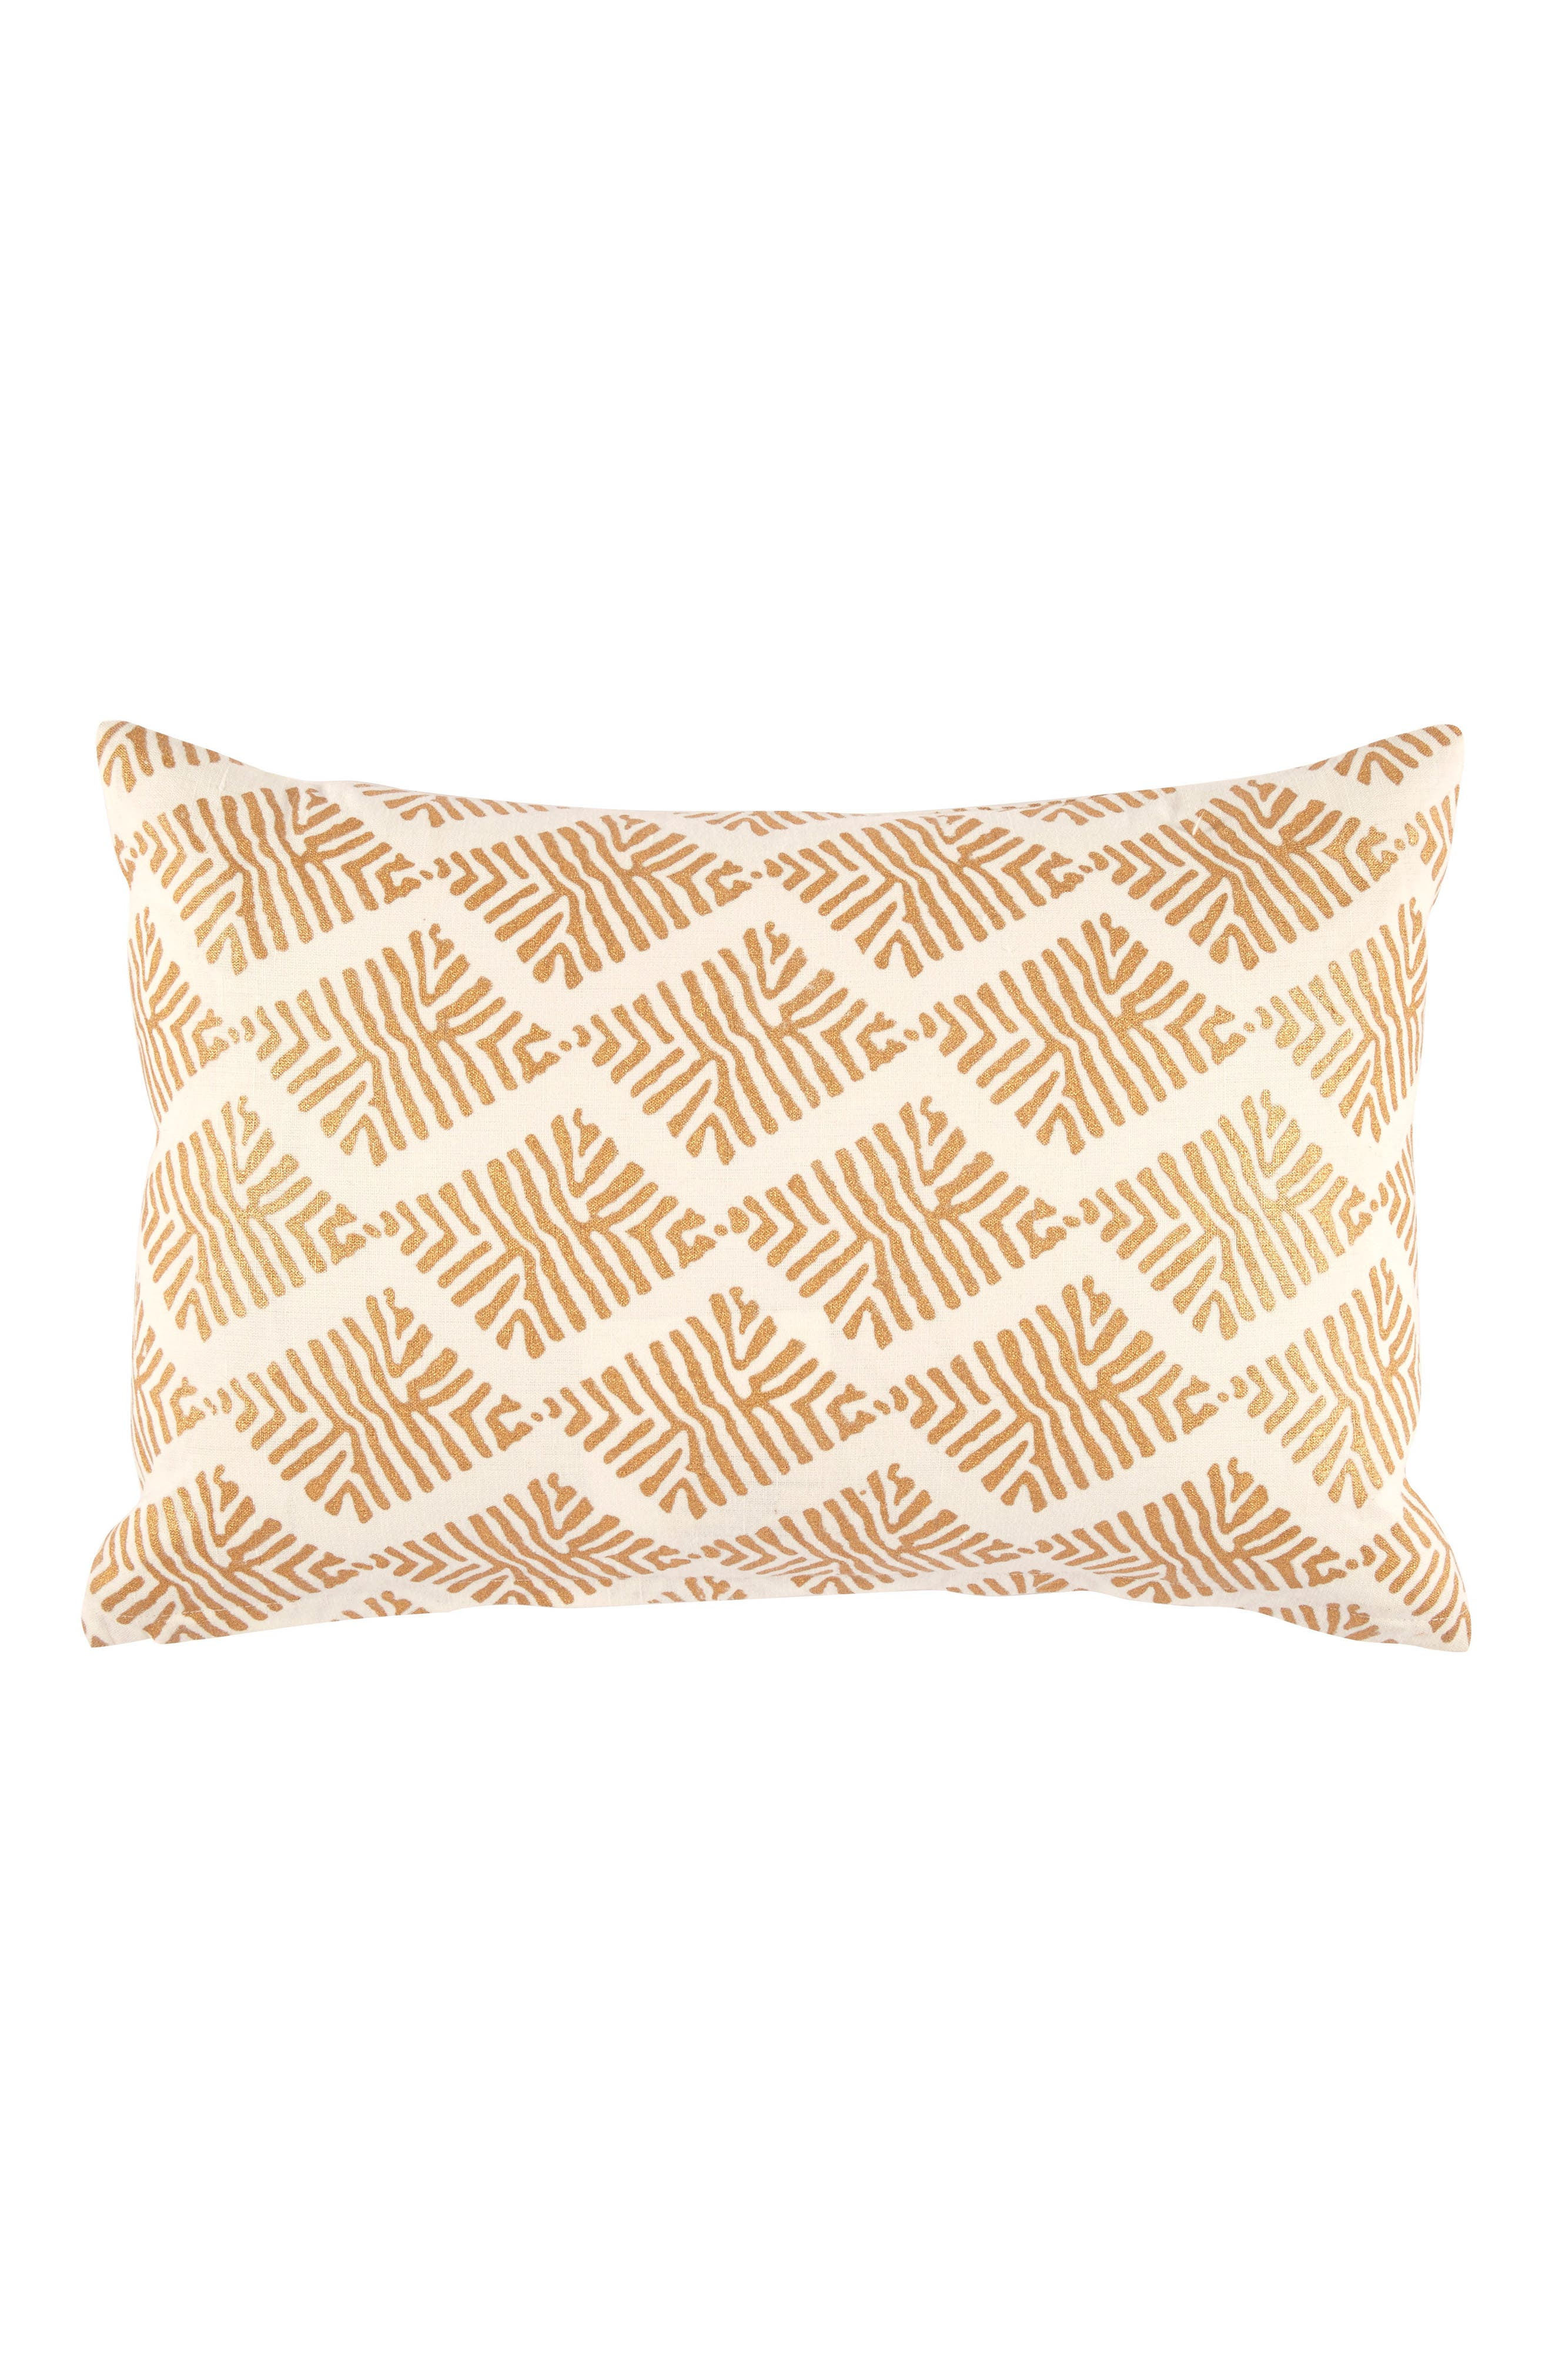 Sharak Accent Pillow,                         Main,                         color, White/ Gold